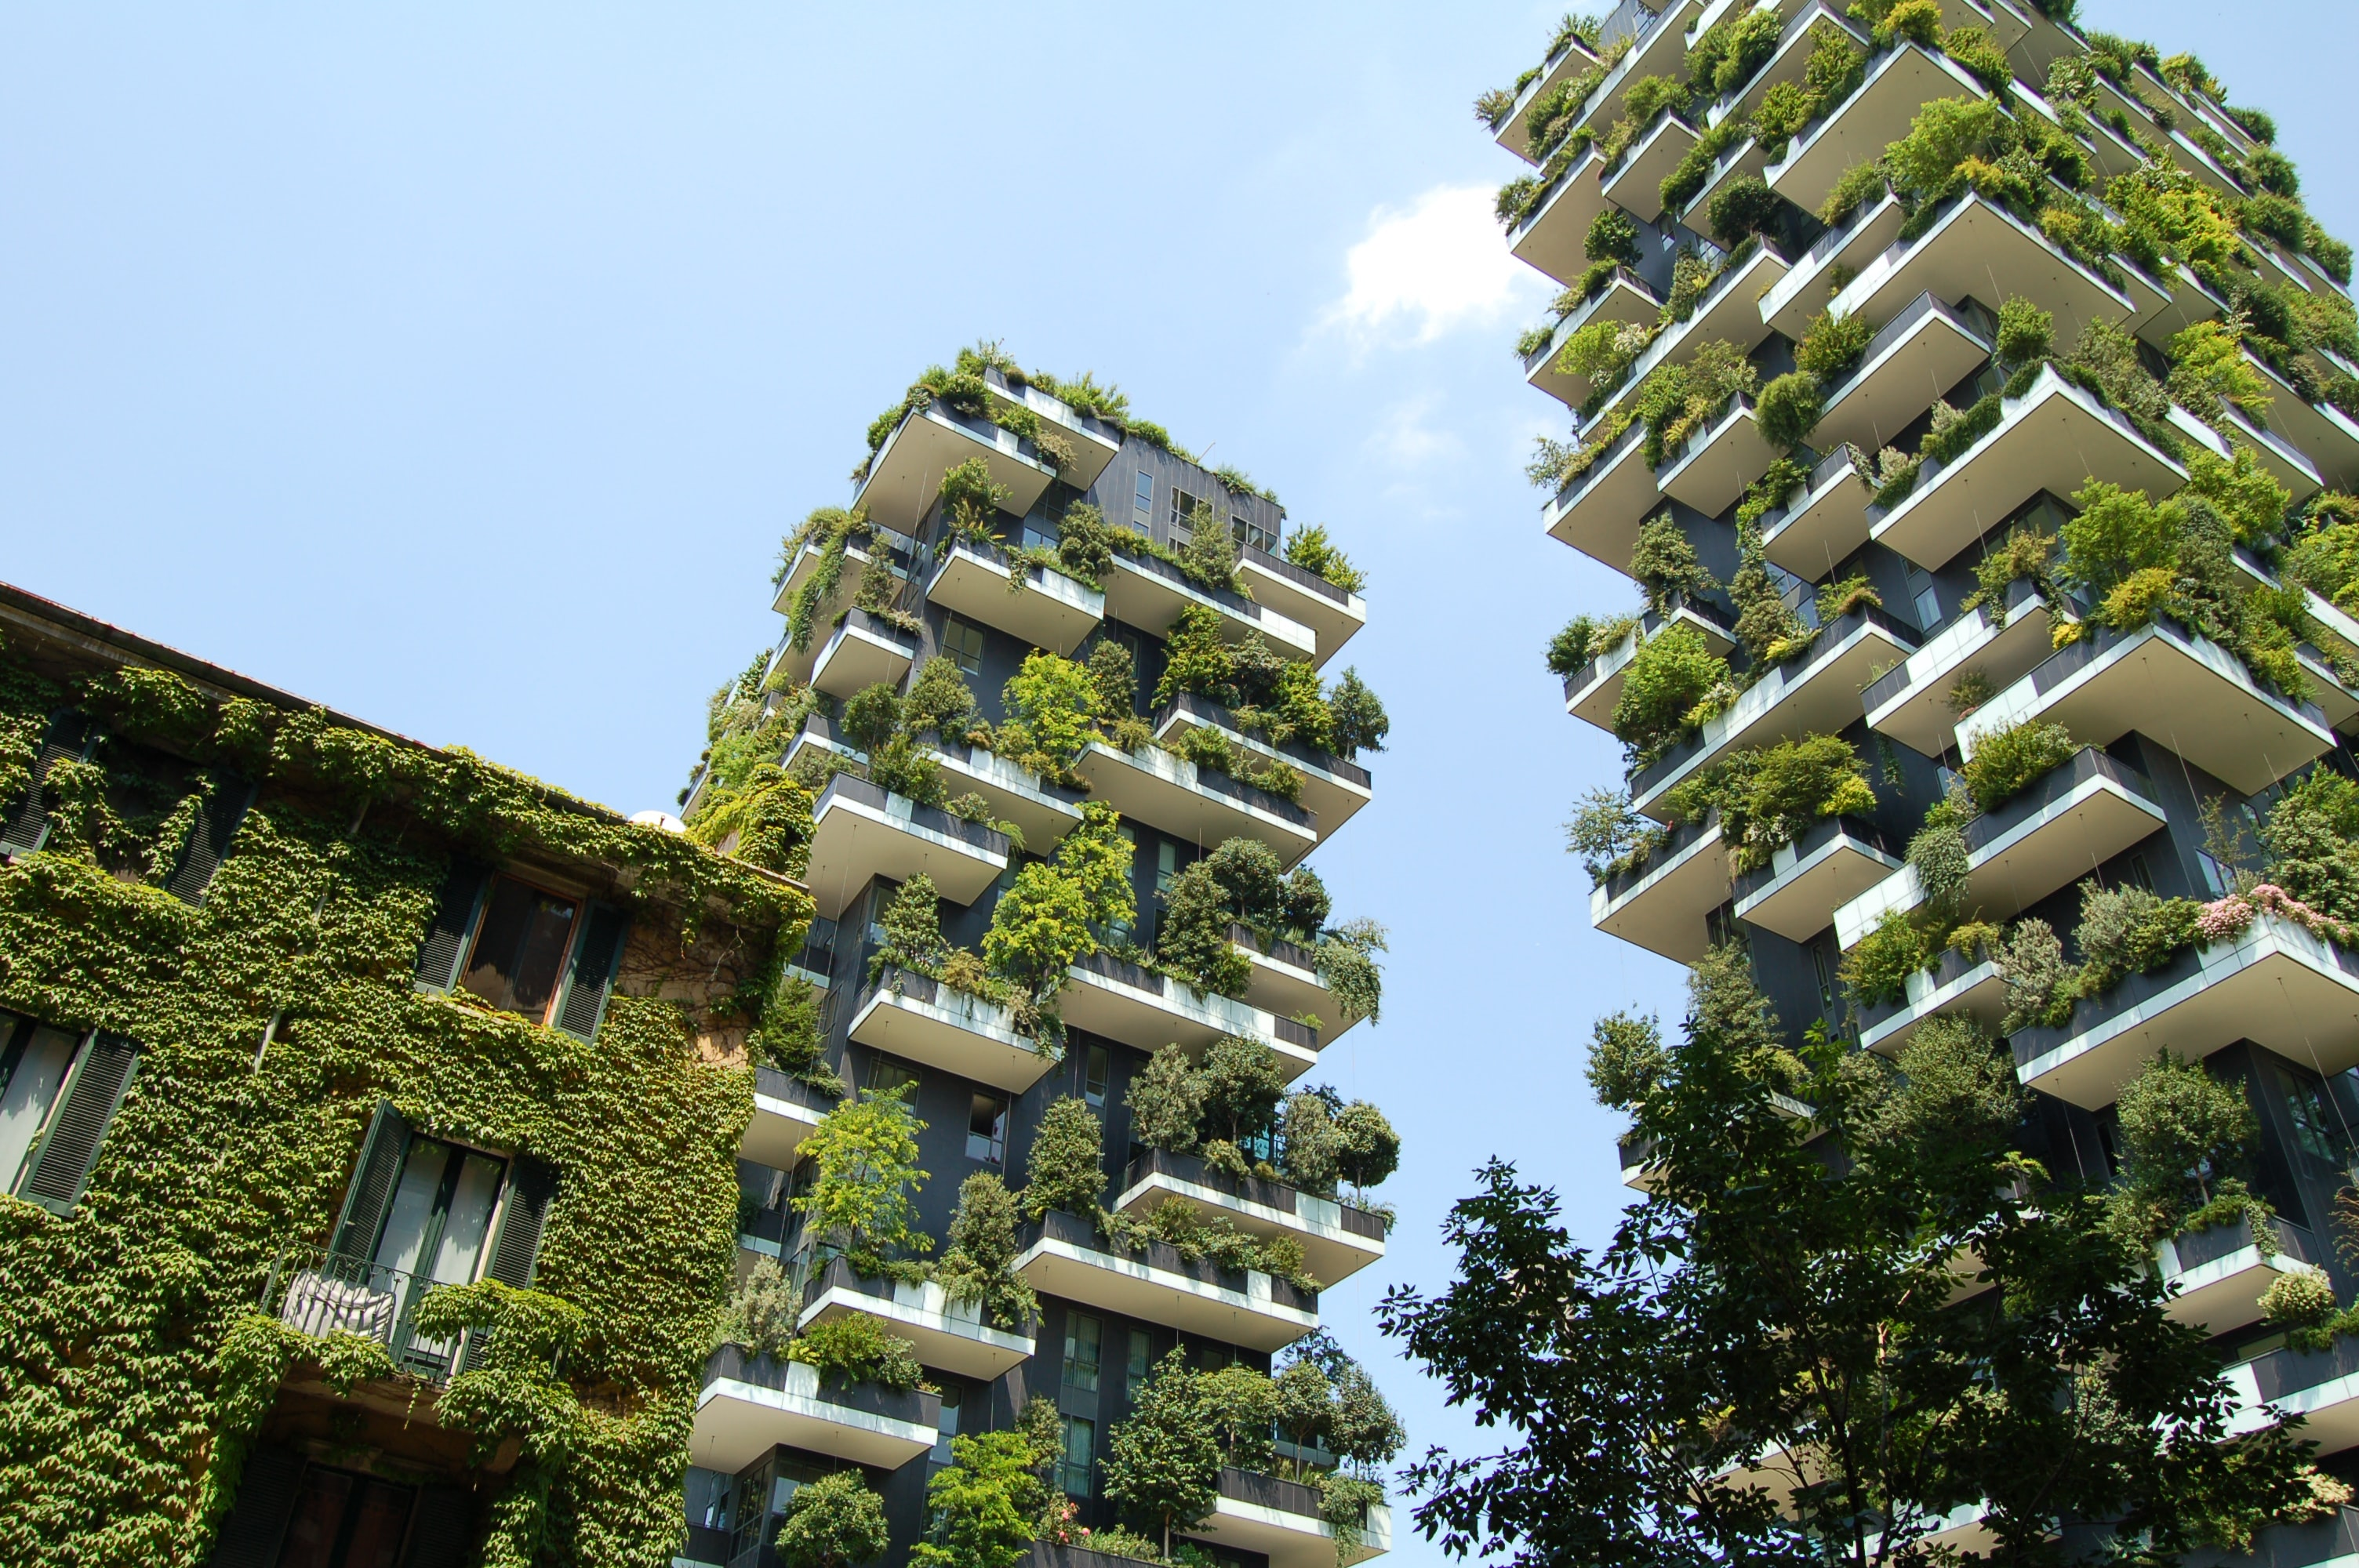 worm's-eye view photography of building surrounded with plants